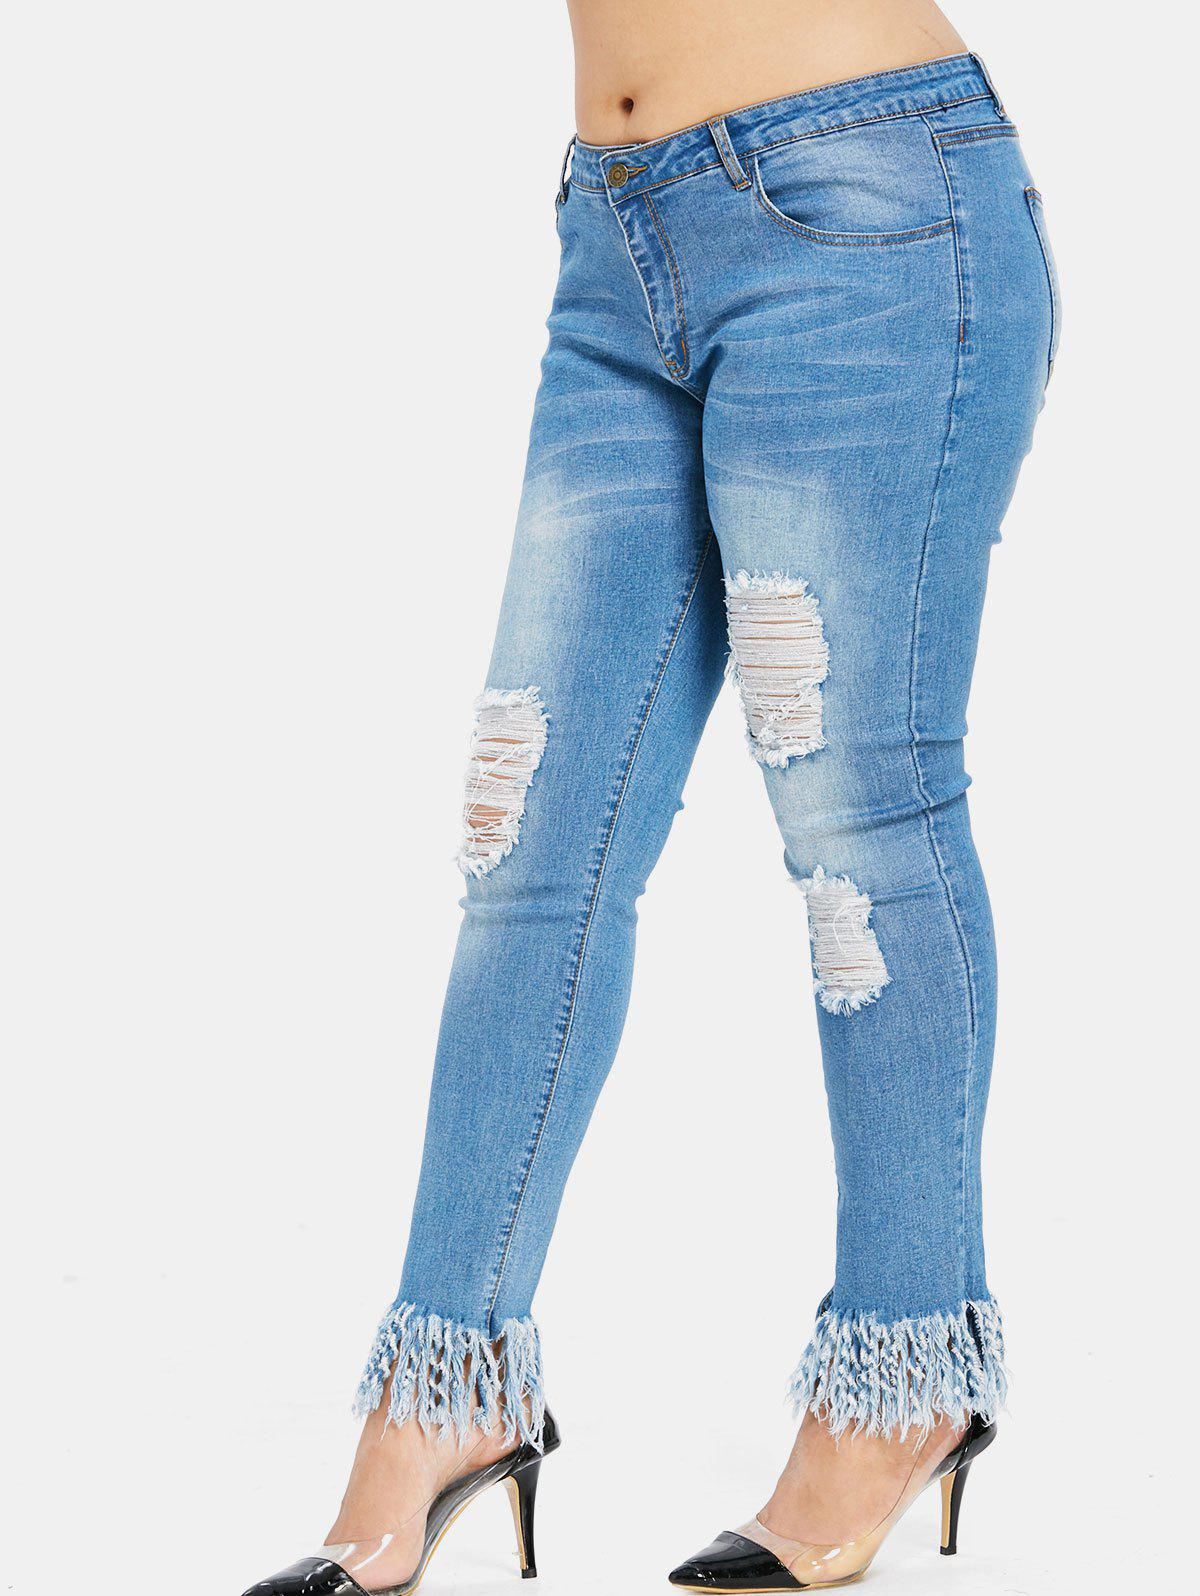 Shop Distressed Plus Size Skinny Jeans